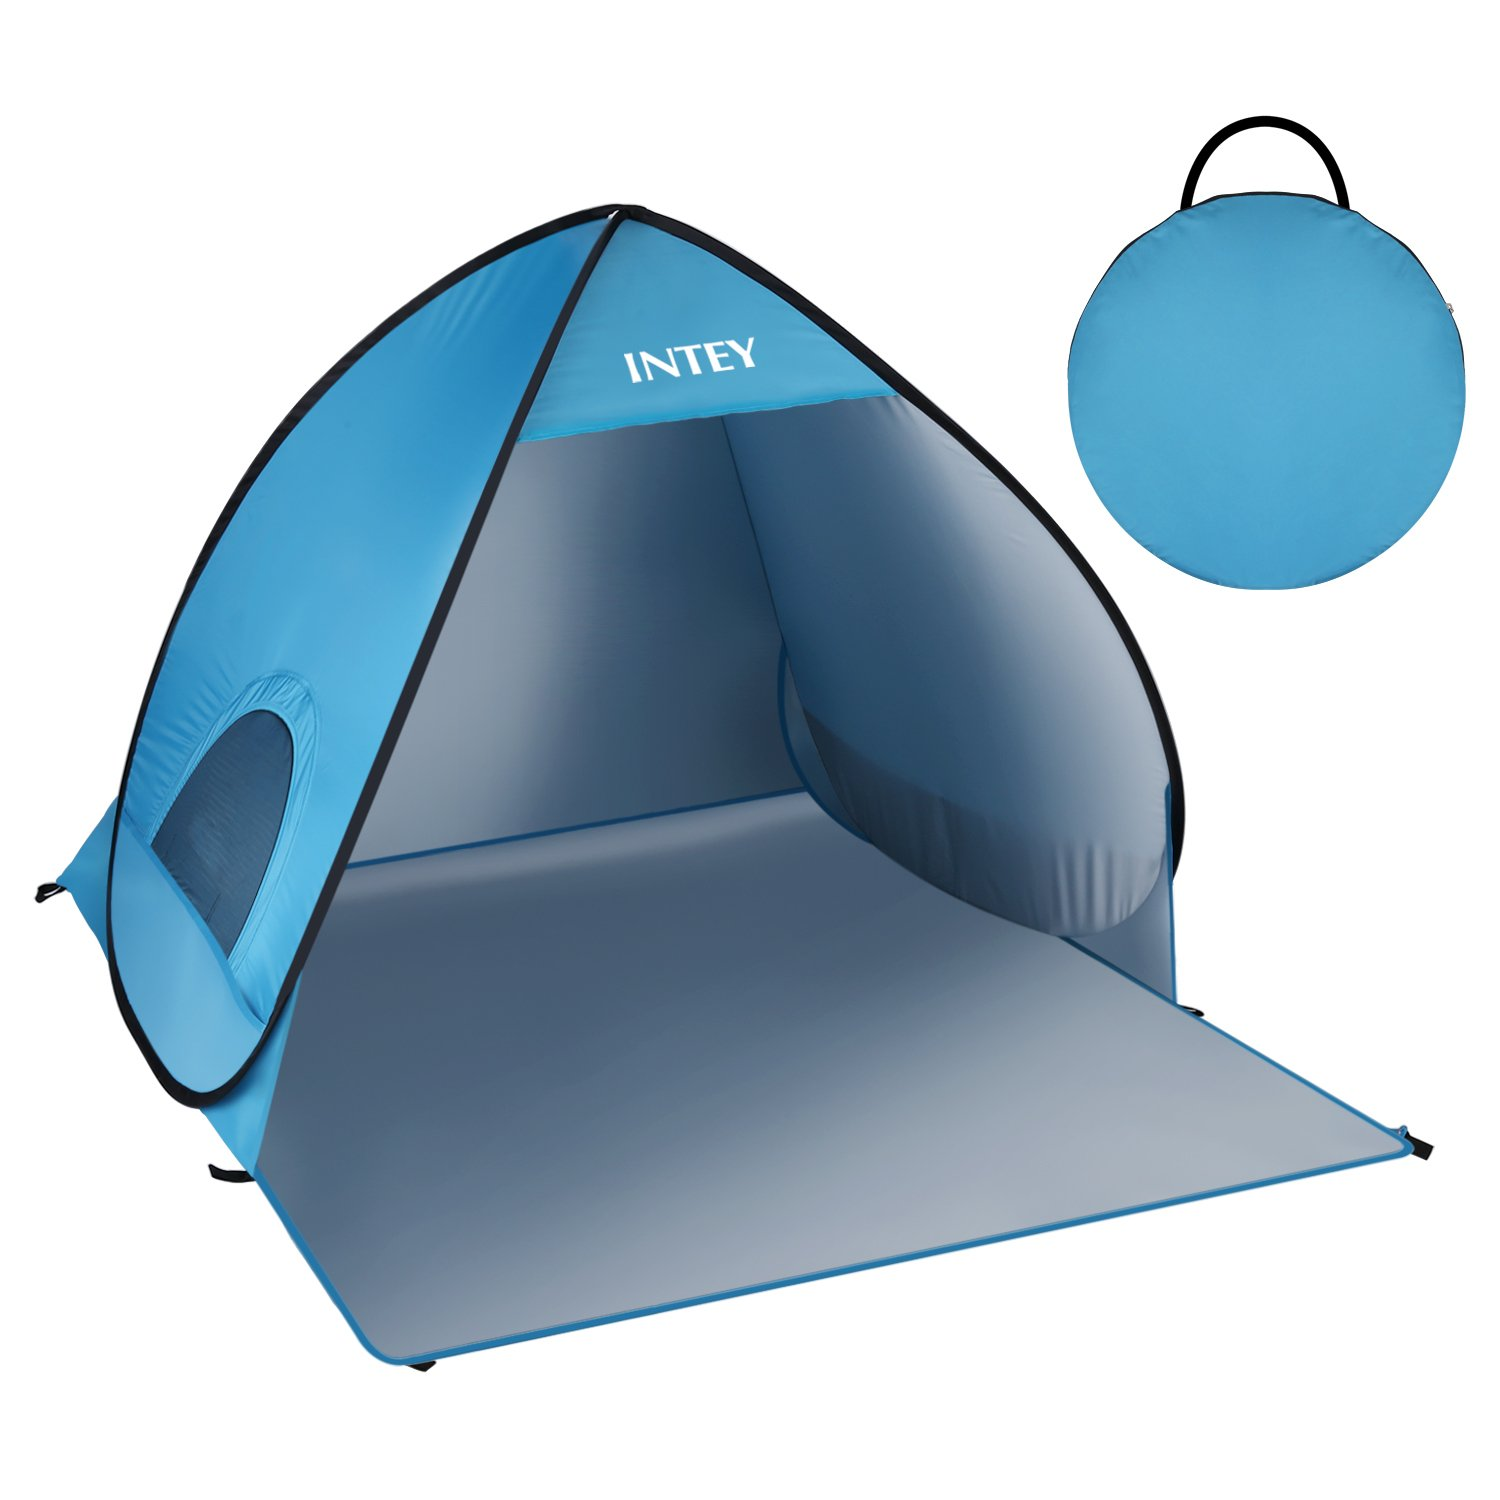 INTEY Beach Tent 3 Season Waterproof Tent 2-3 Person Camping Tent Easy Set Up with Portable Pack